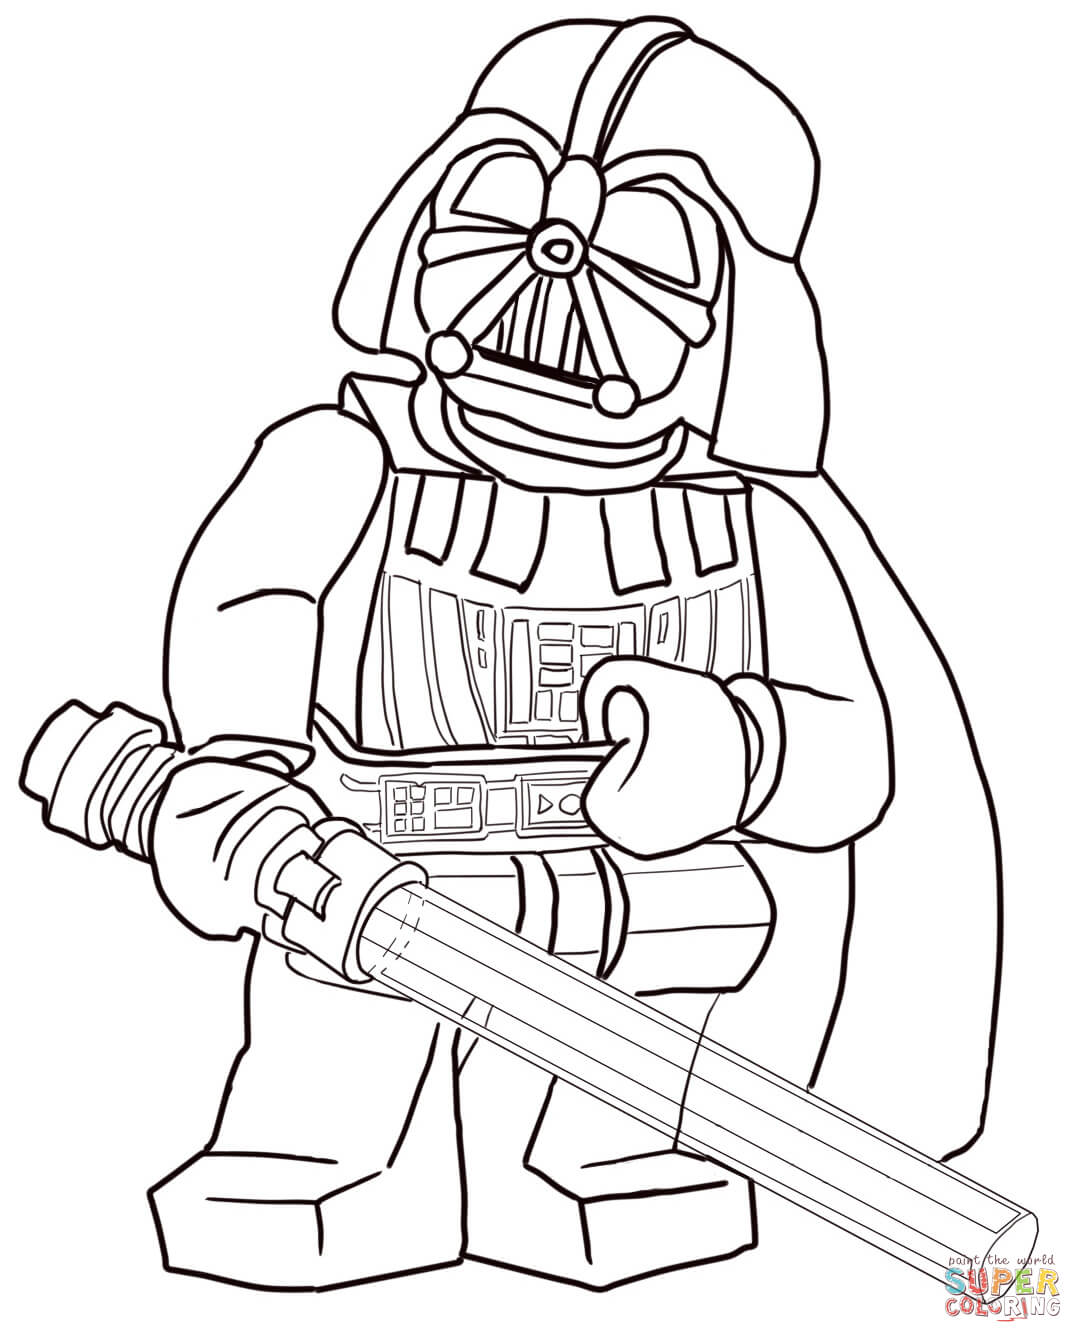 Lego Star Wars Darth Vader coloring page | Free Printable Coloring ...